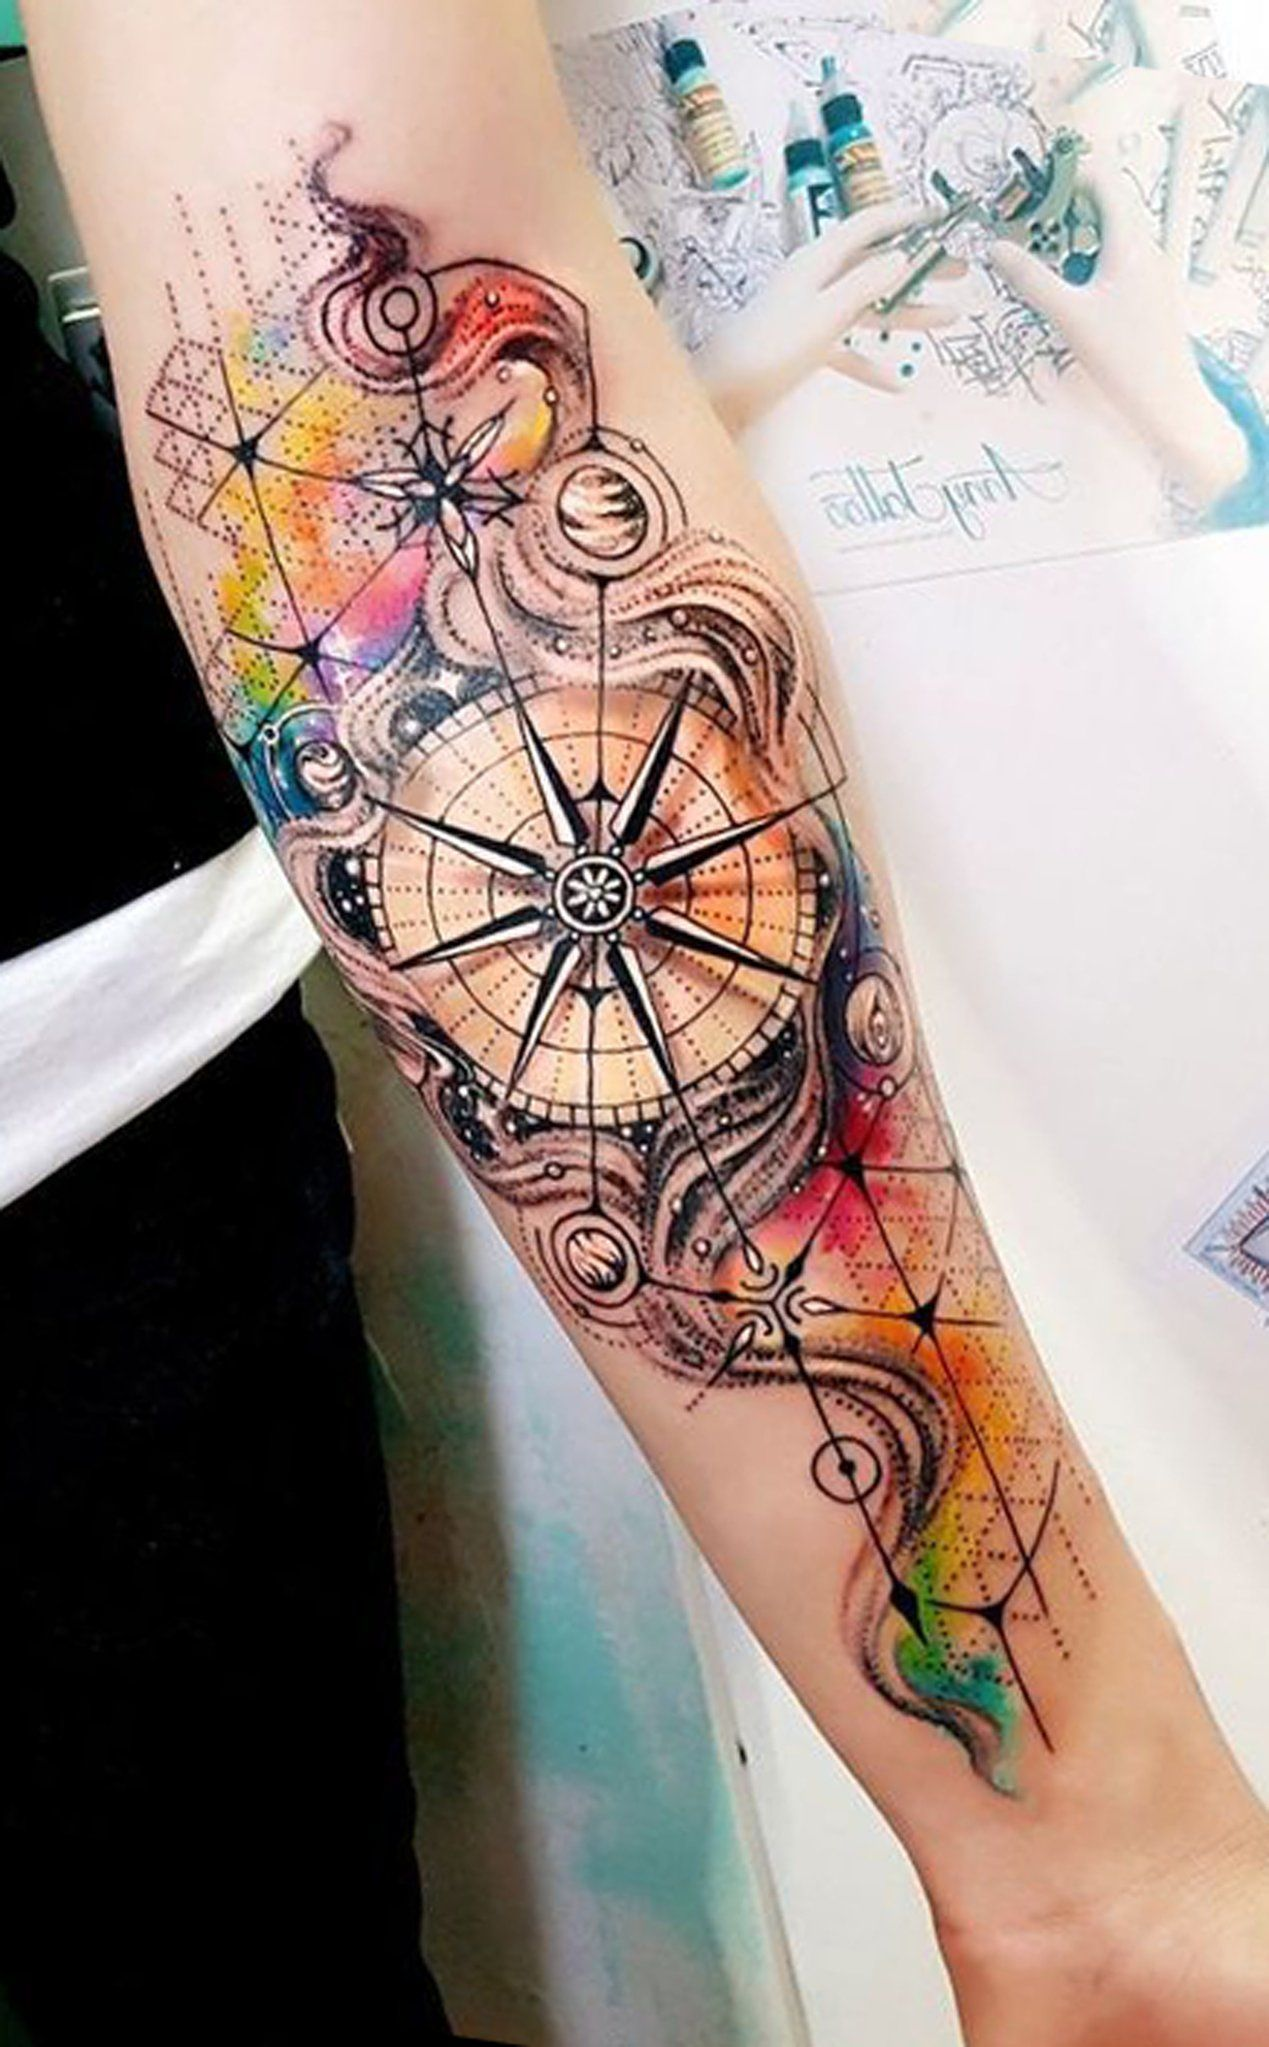 watercolor compass inner forearm tattoo ideas for women. Black Bedroom Furniture Sets. Home Design Ideas